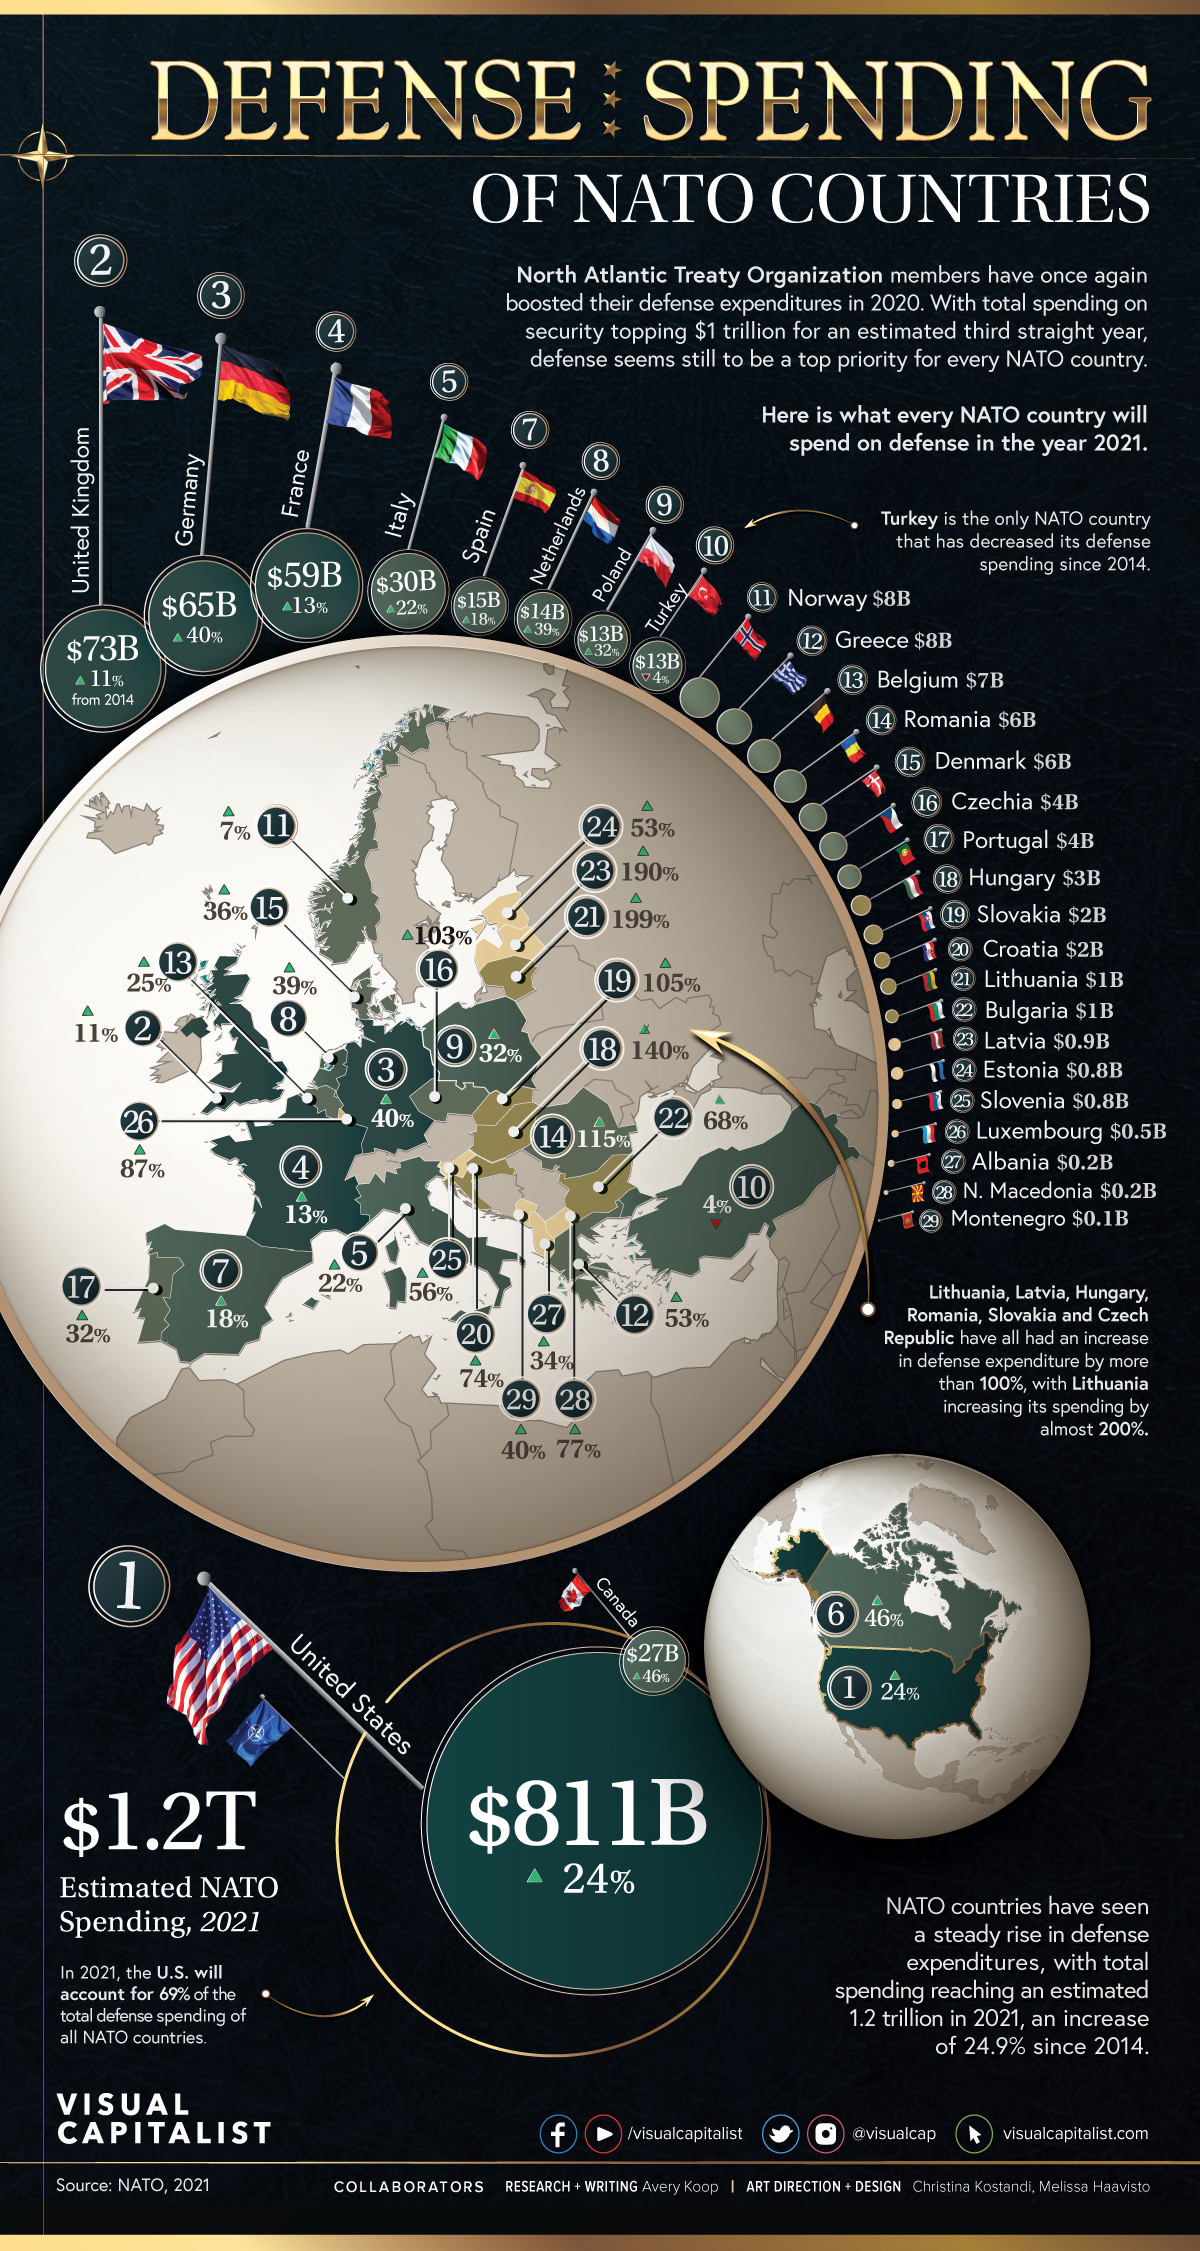 Visualizing NATO Defense Spending by Country